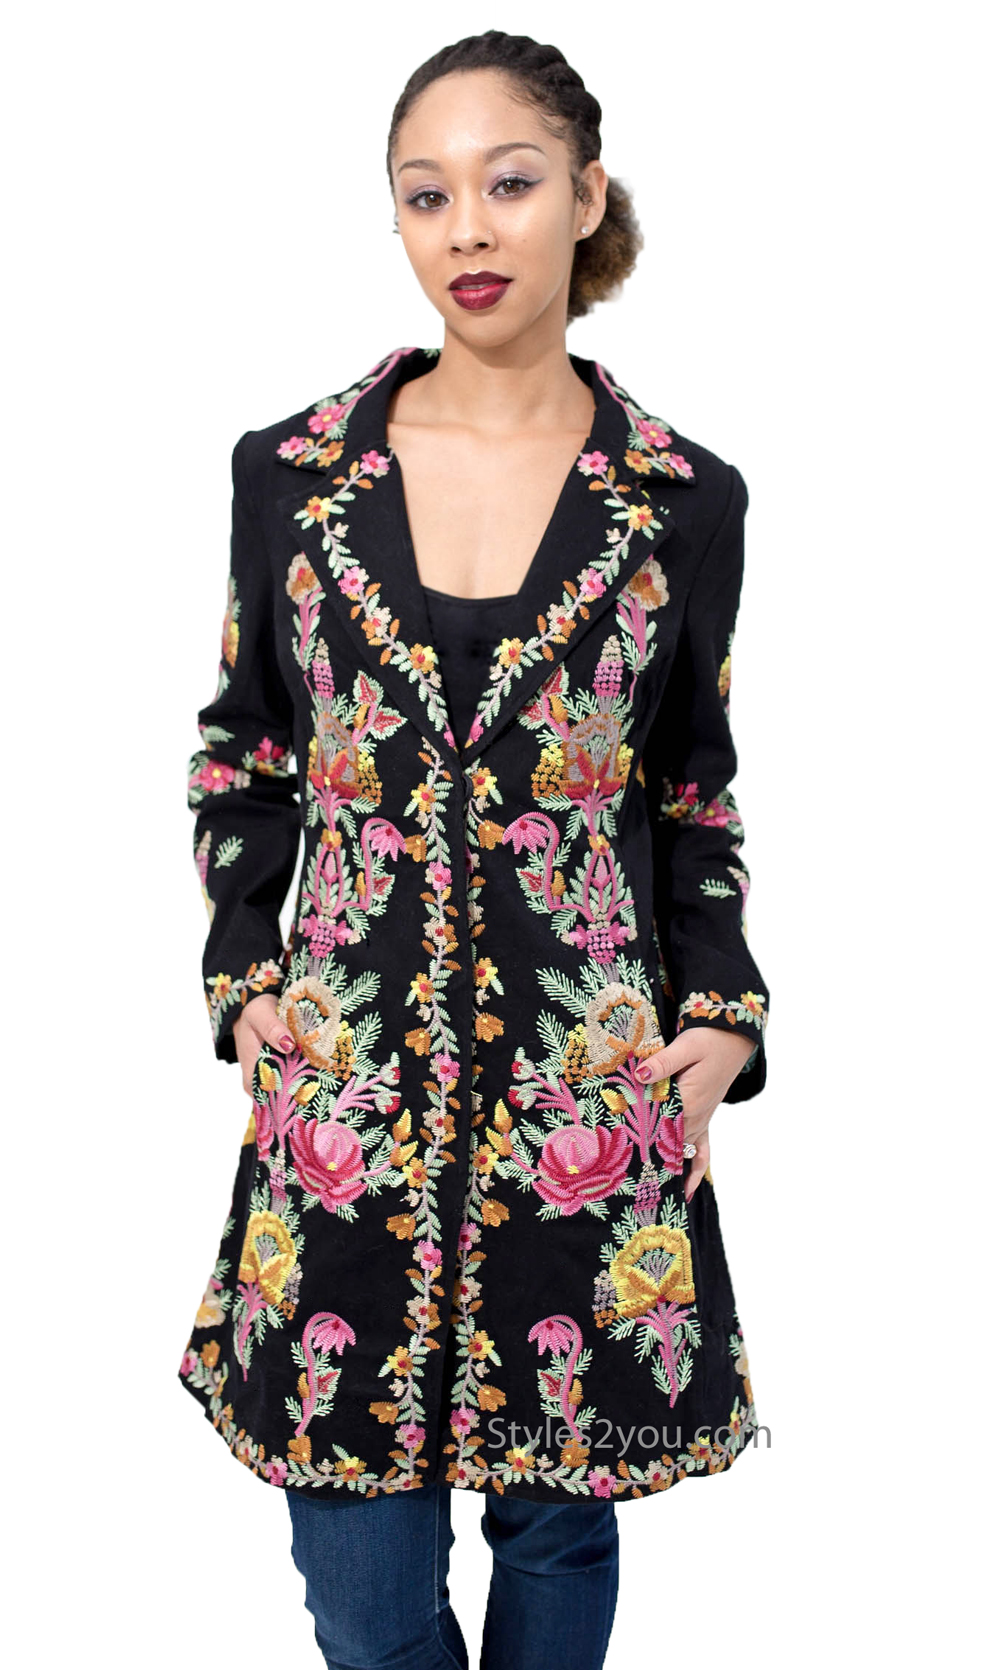 Blouses To Wear With Leggings